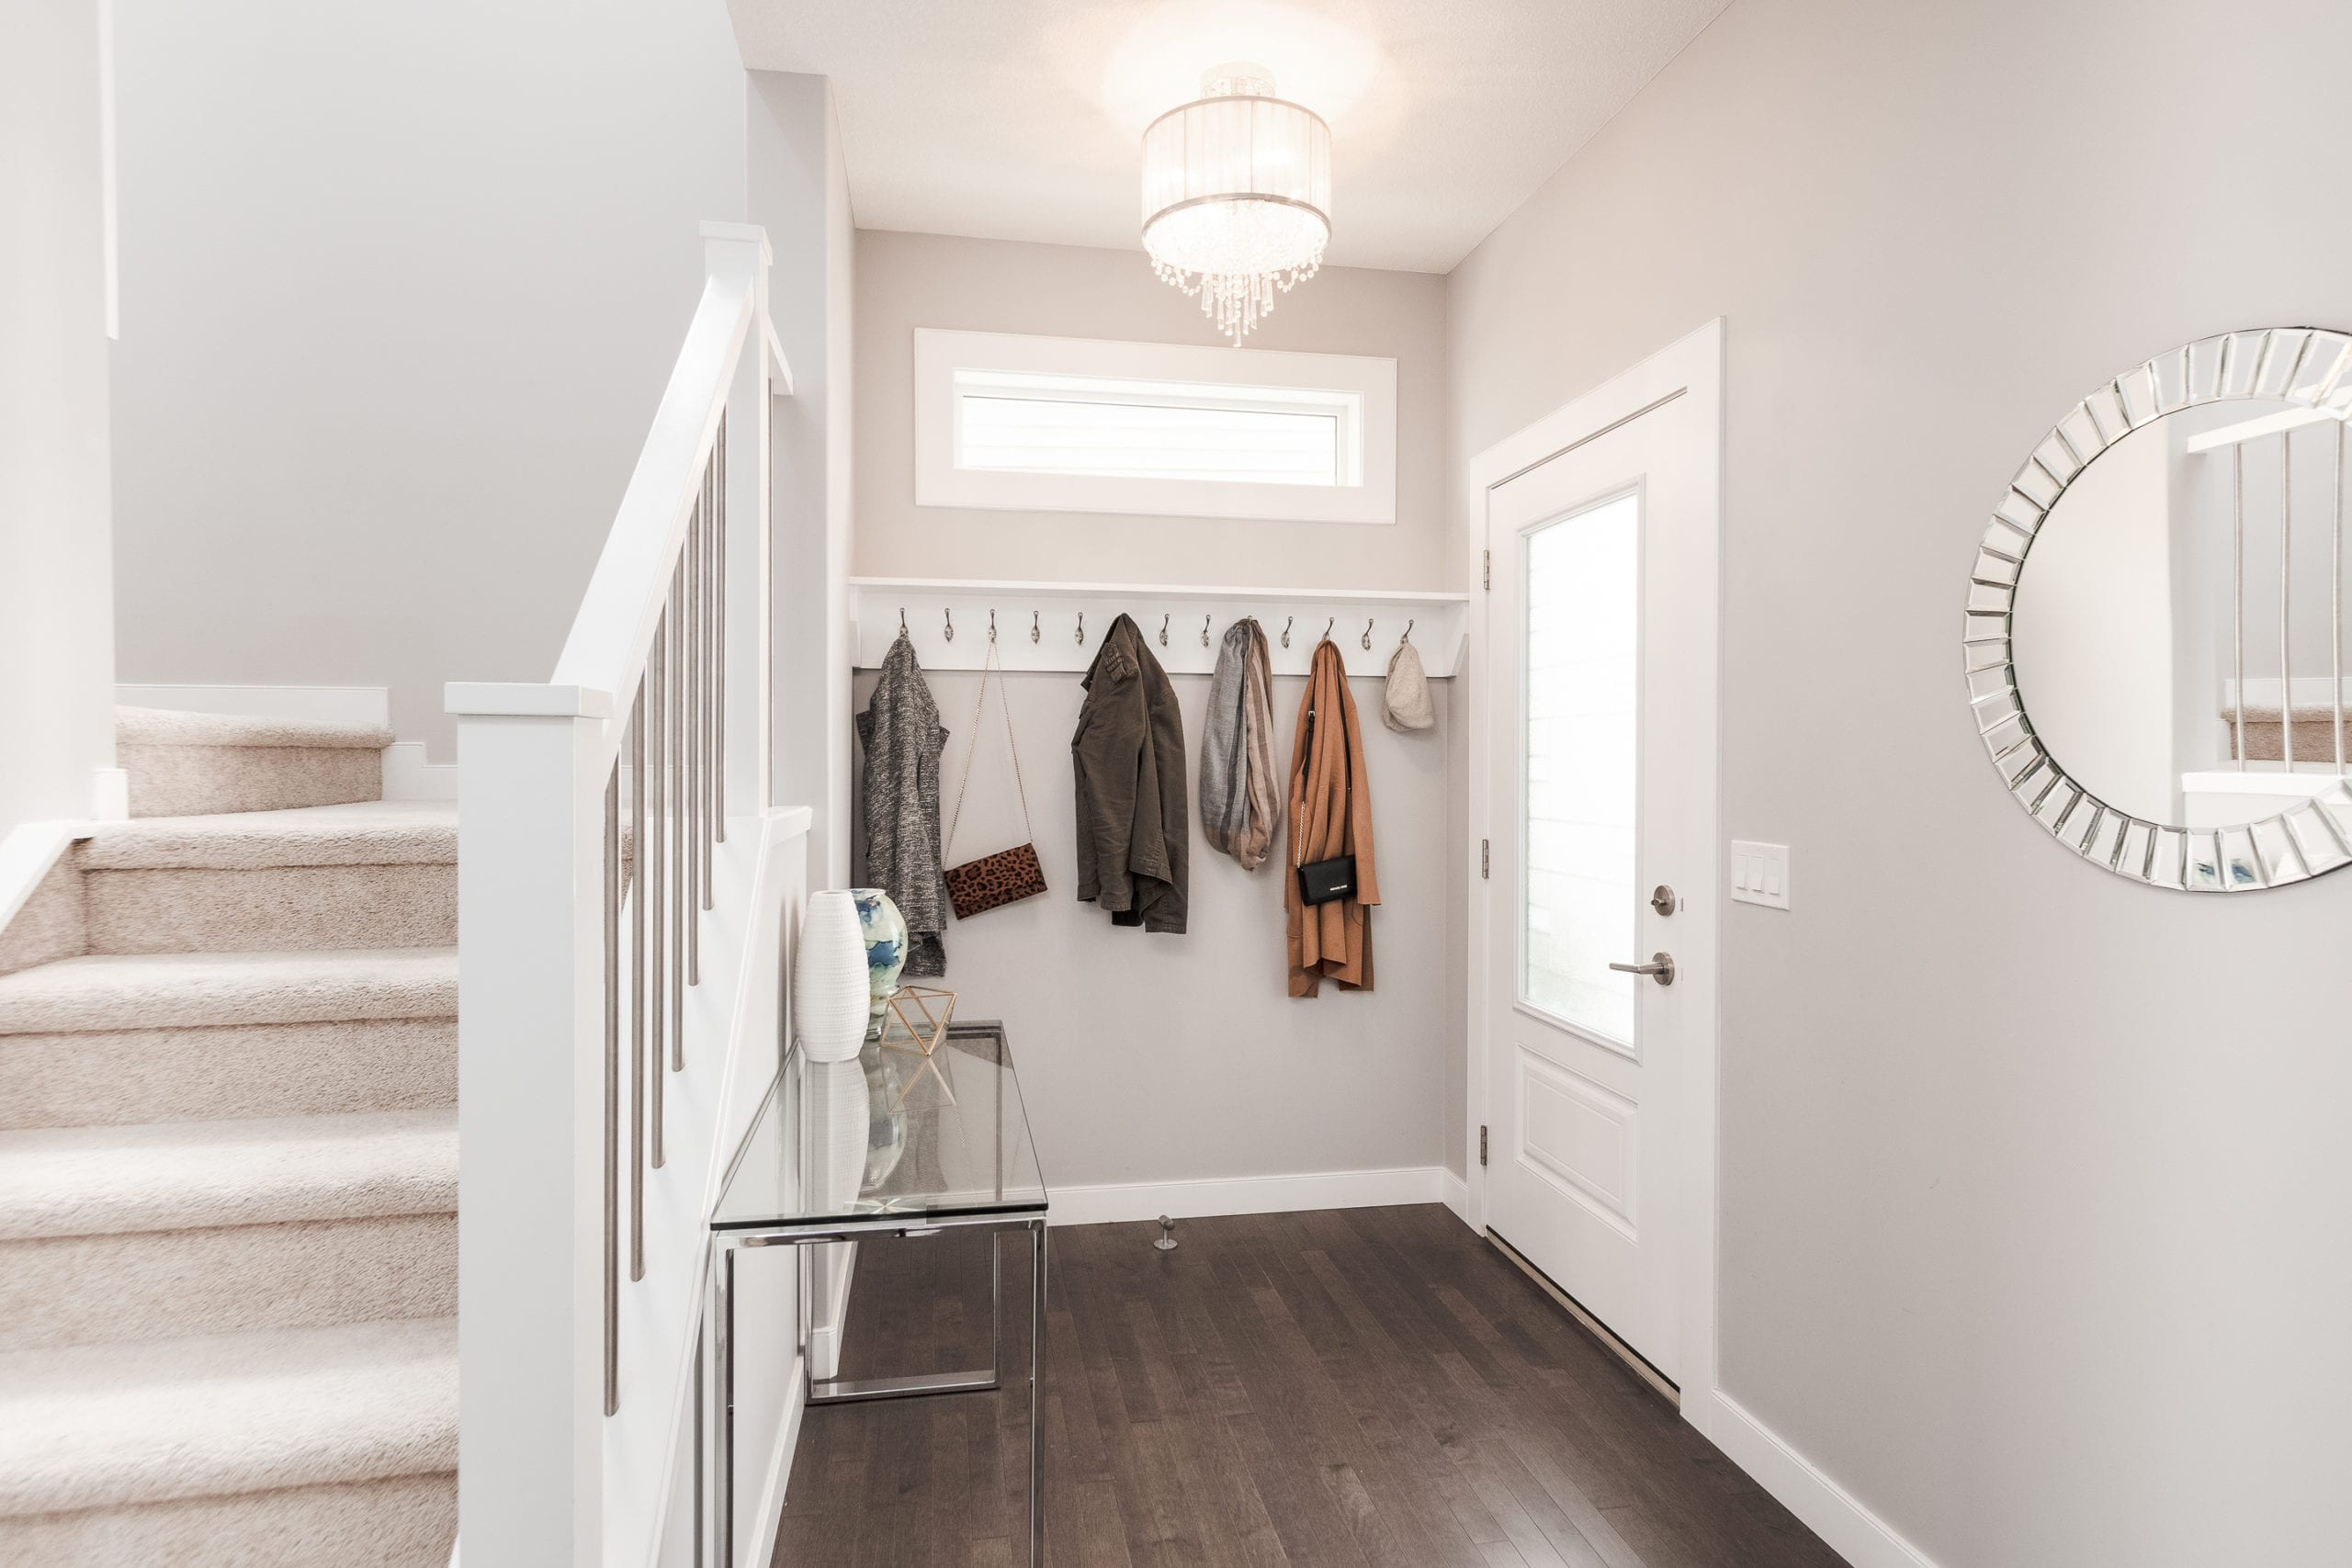 Hello Gorgeous - 1306 Kings Heights Way SE, Airdrie AB. - Tara Molina Real Estate (3 of 53)